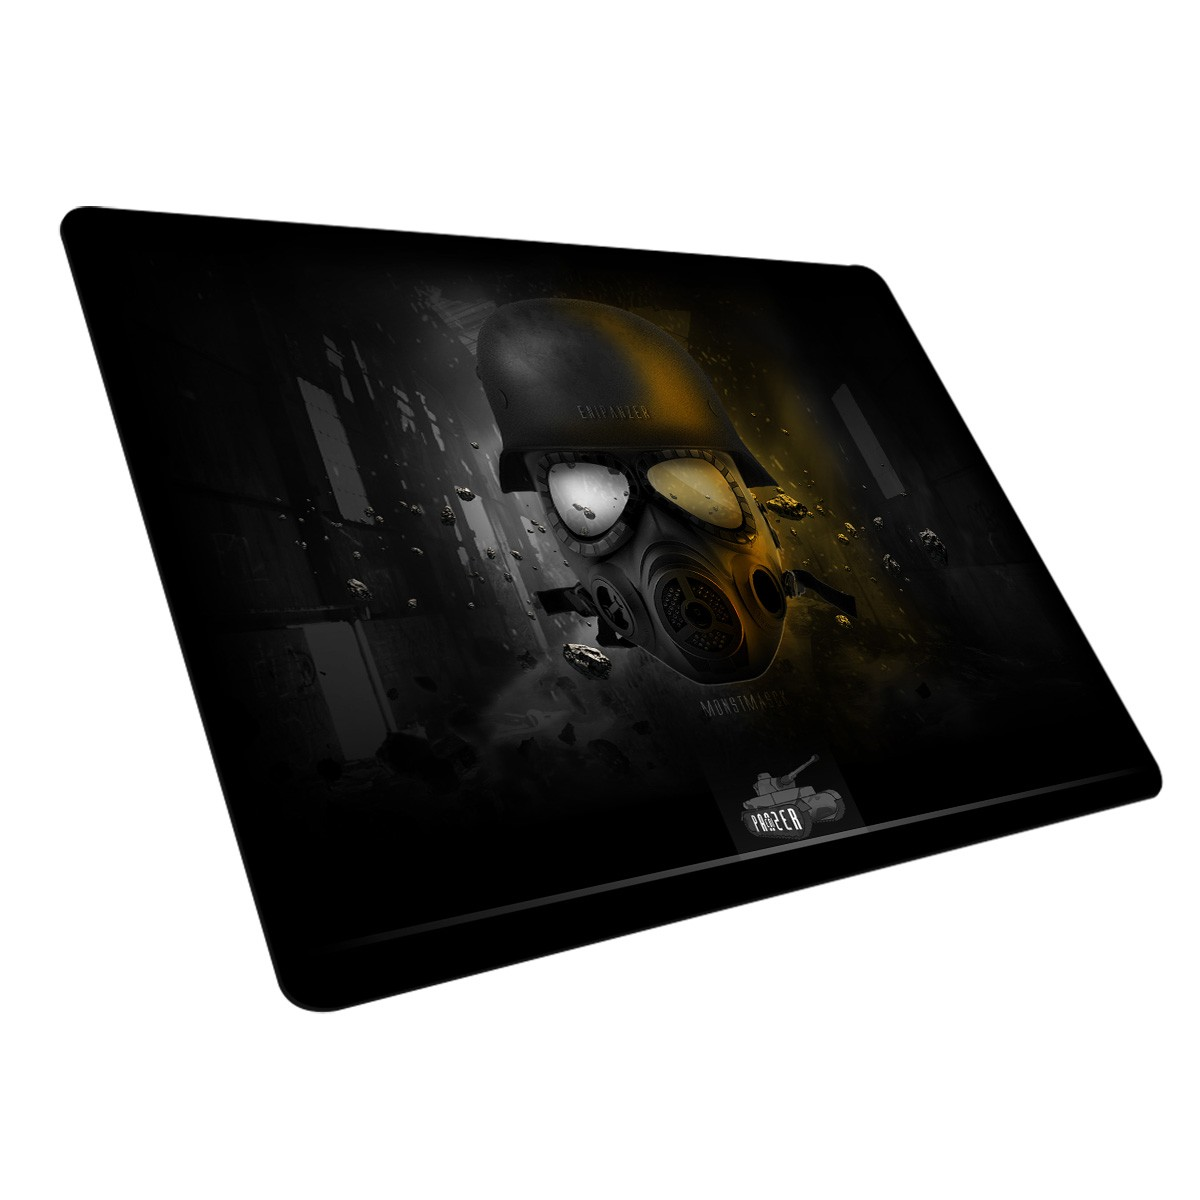 Mouse Pad Enipanzer Warpad88 Monstmasck - Grande - 40 x 45 x 0,3cm  - Fatality